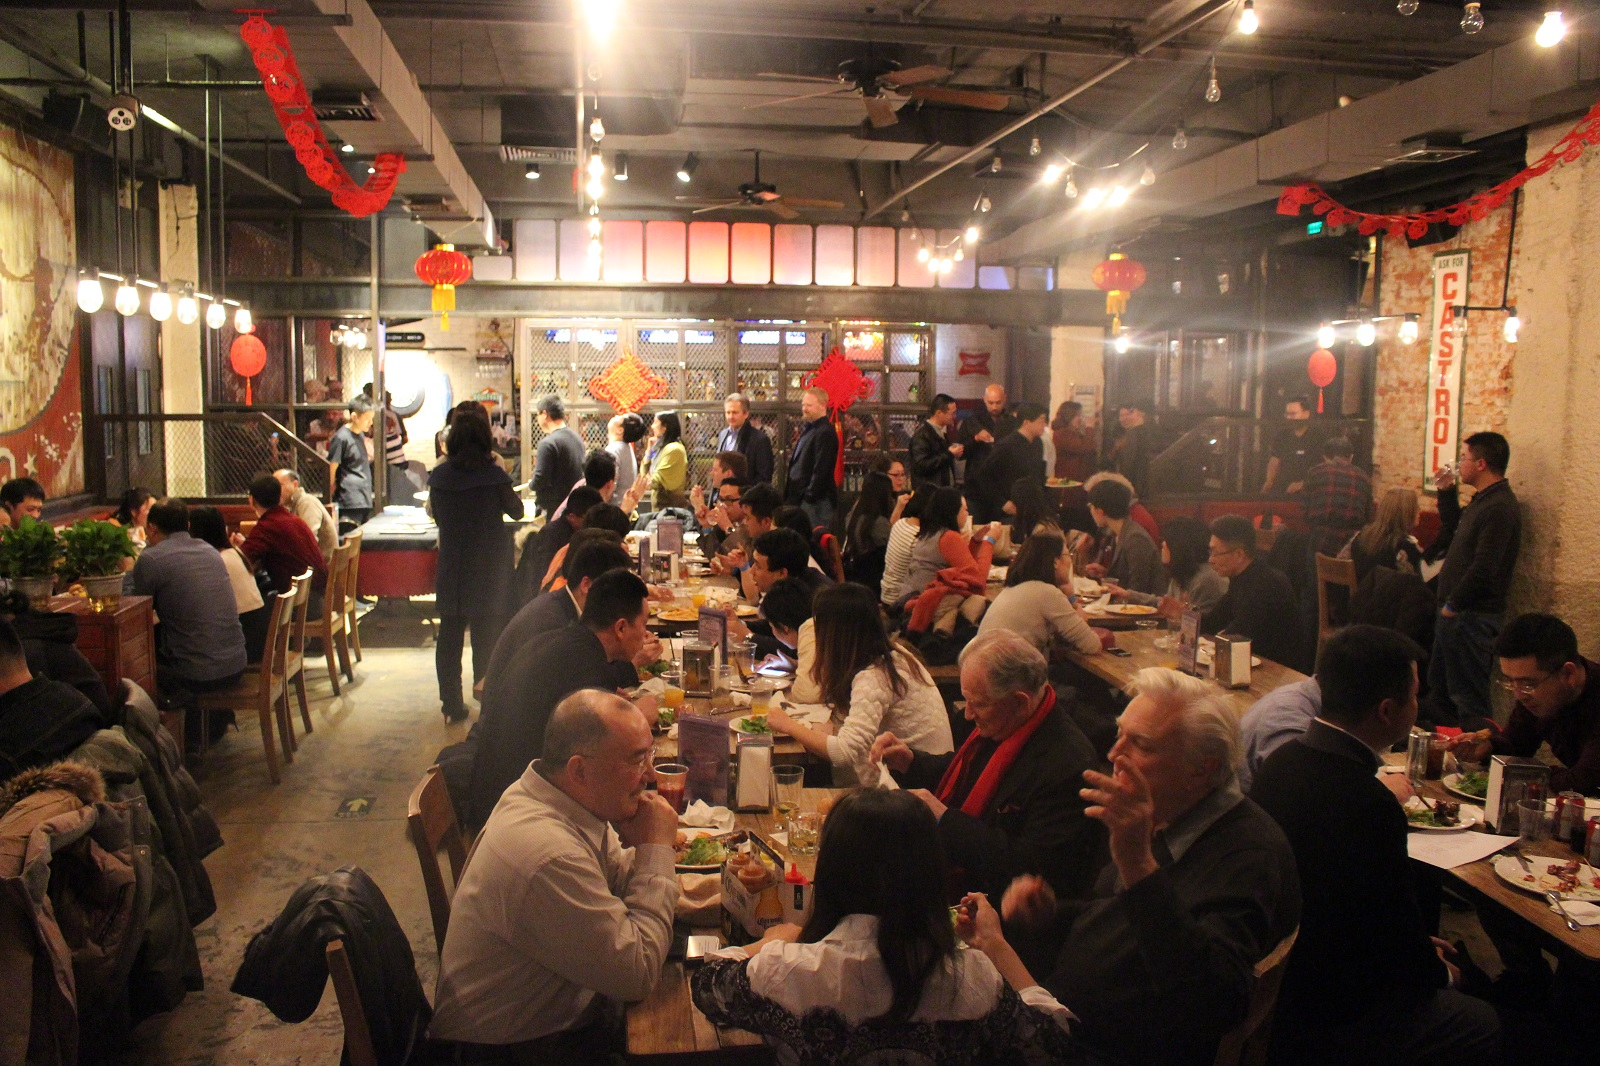 Cold Winter, Warm Gathering: 90 attend TEA mixer in Beijing Feb 8